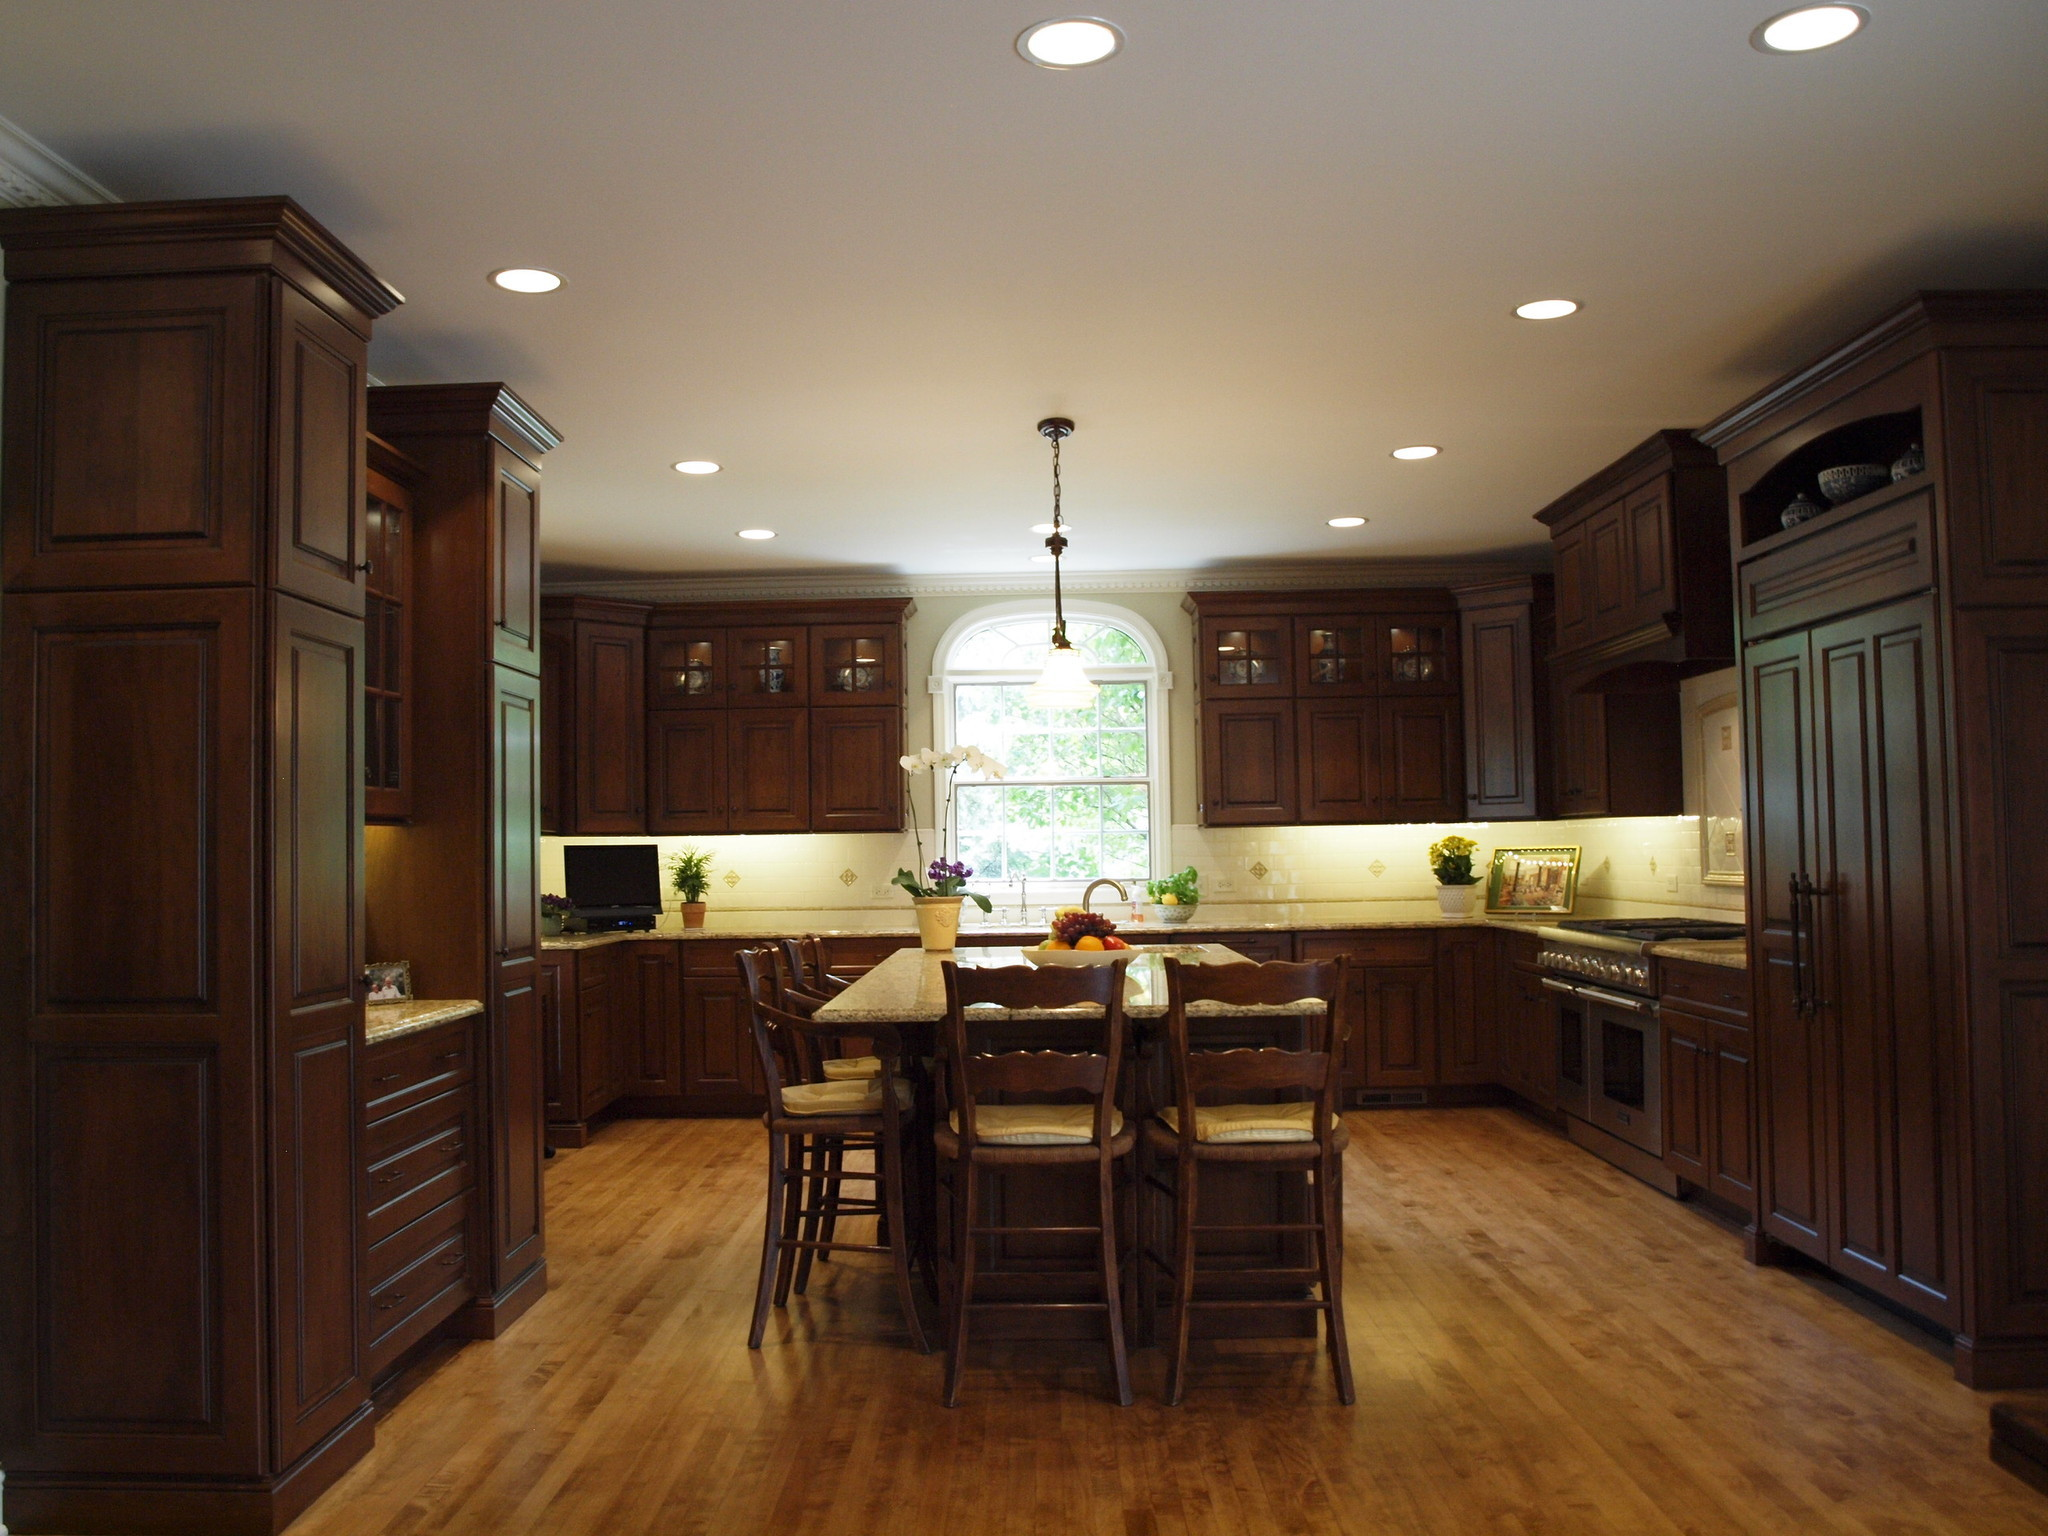 How To Make A Large Kitchen Layout Work The Doings Hinsdale